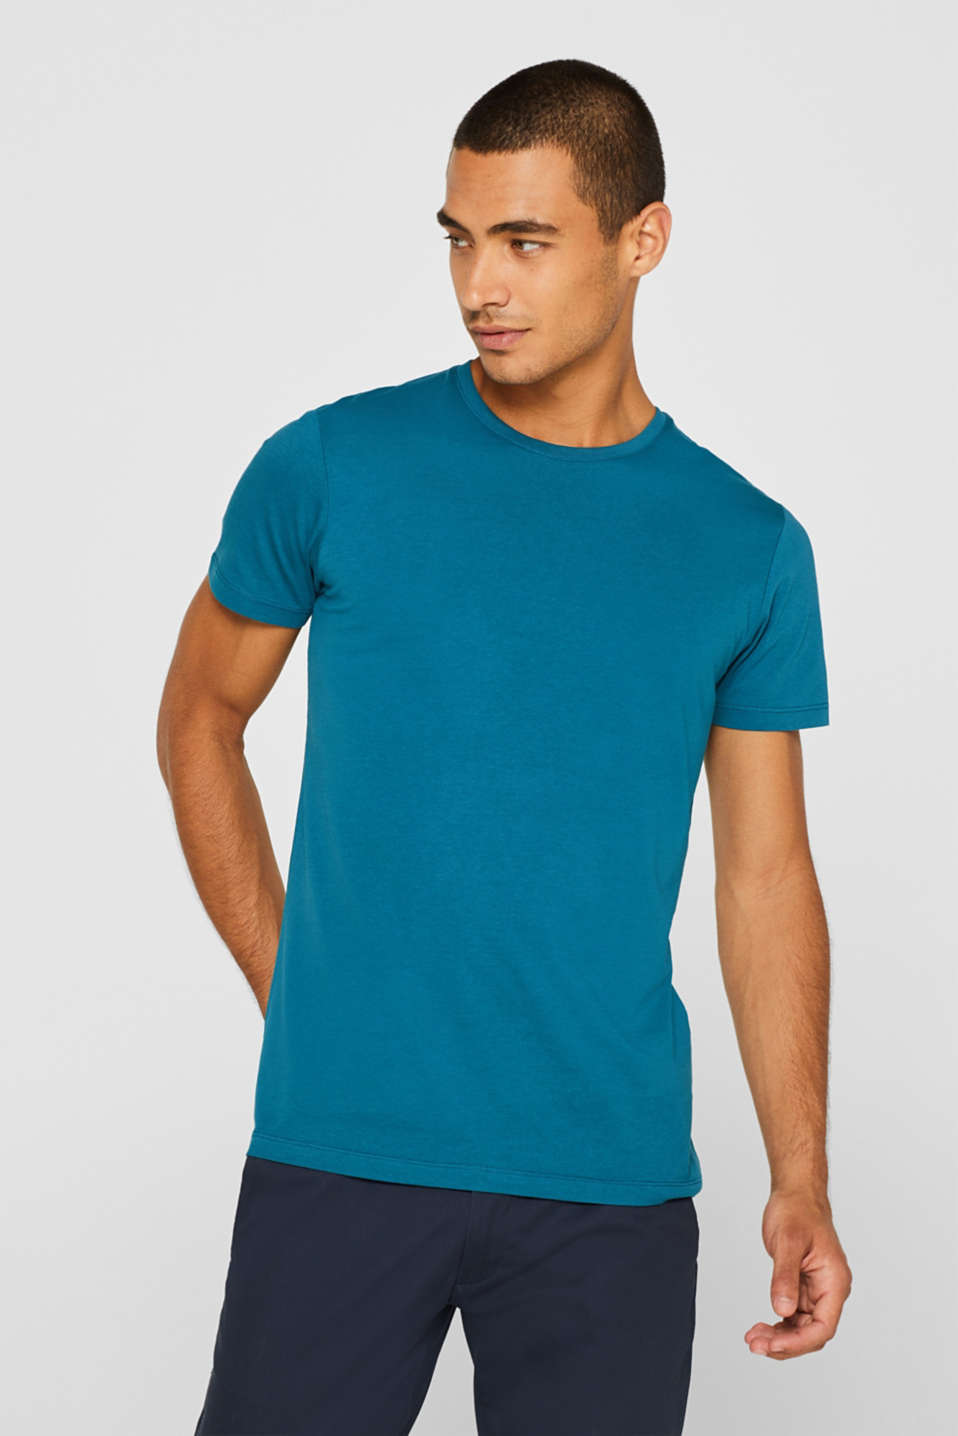 Jersey T-shirt in 100% cotton, PETROL BLUE 2, detail image number 0